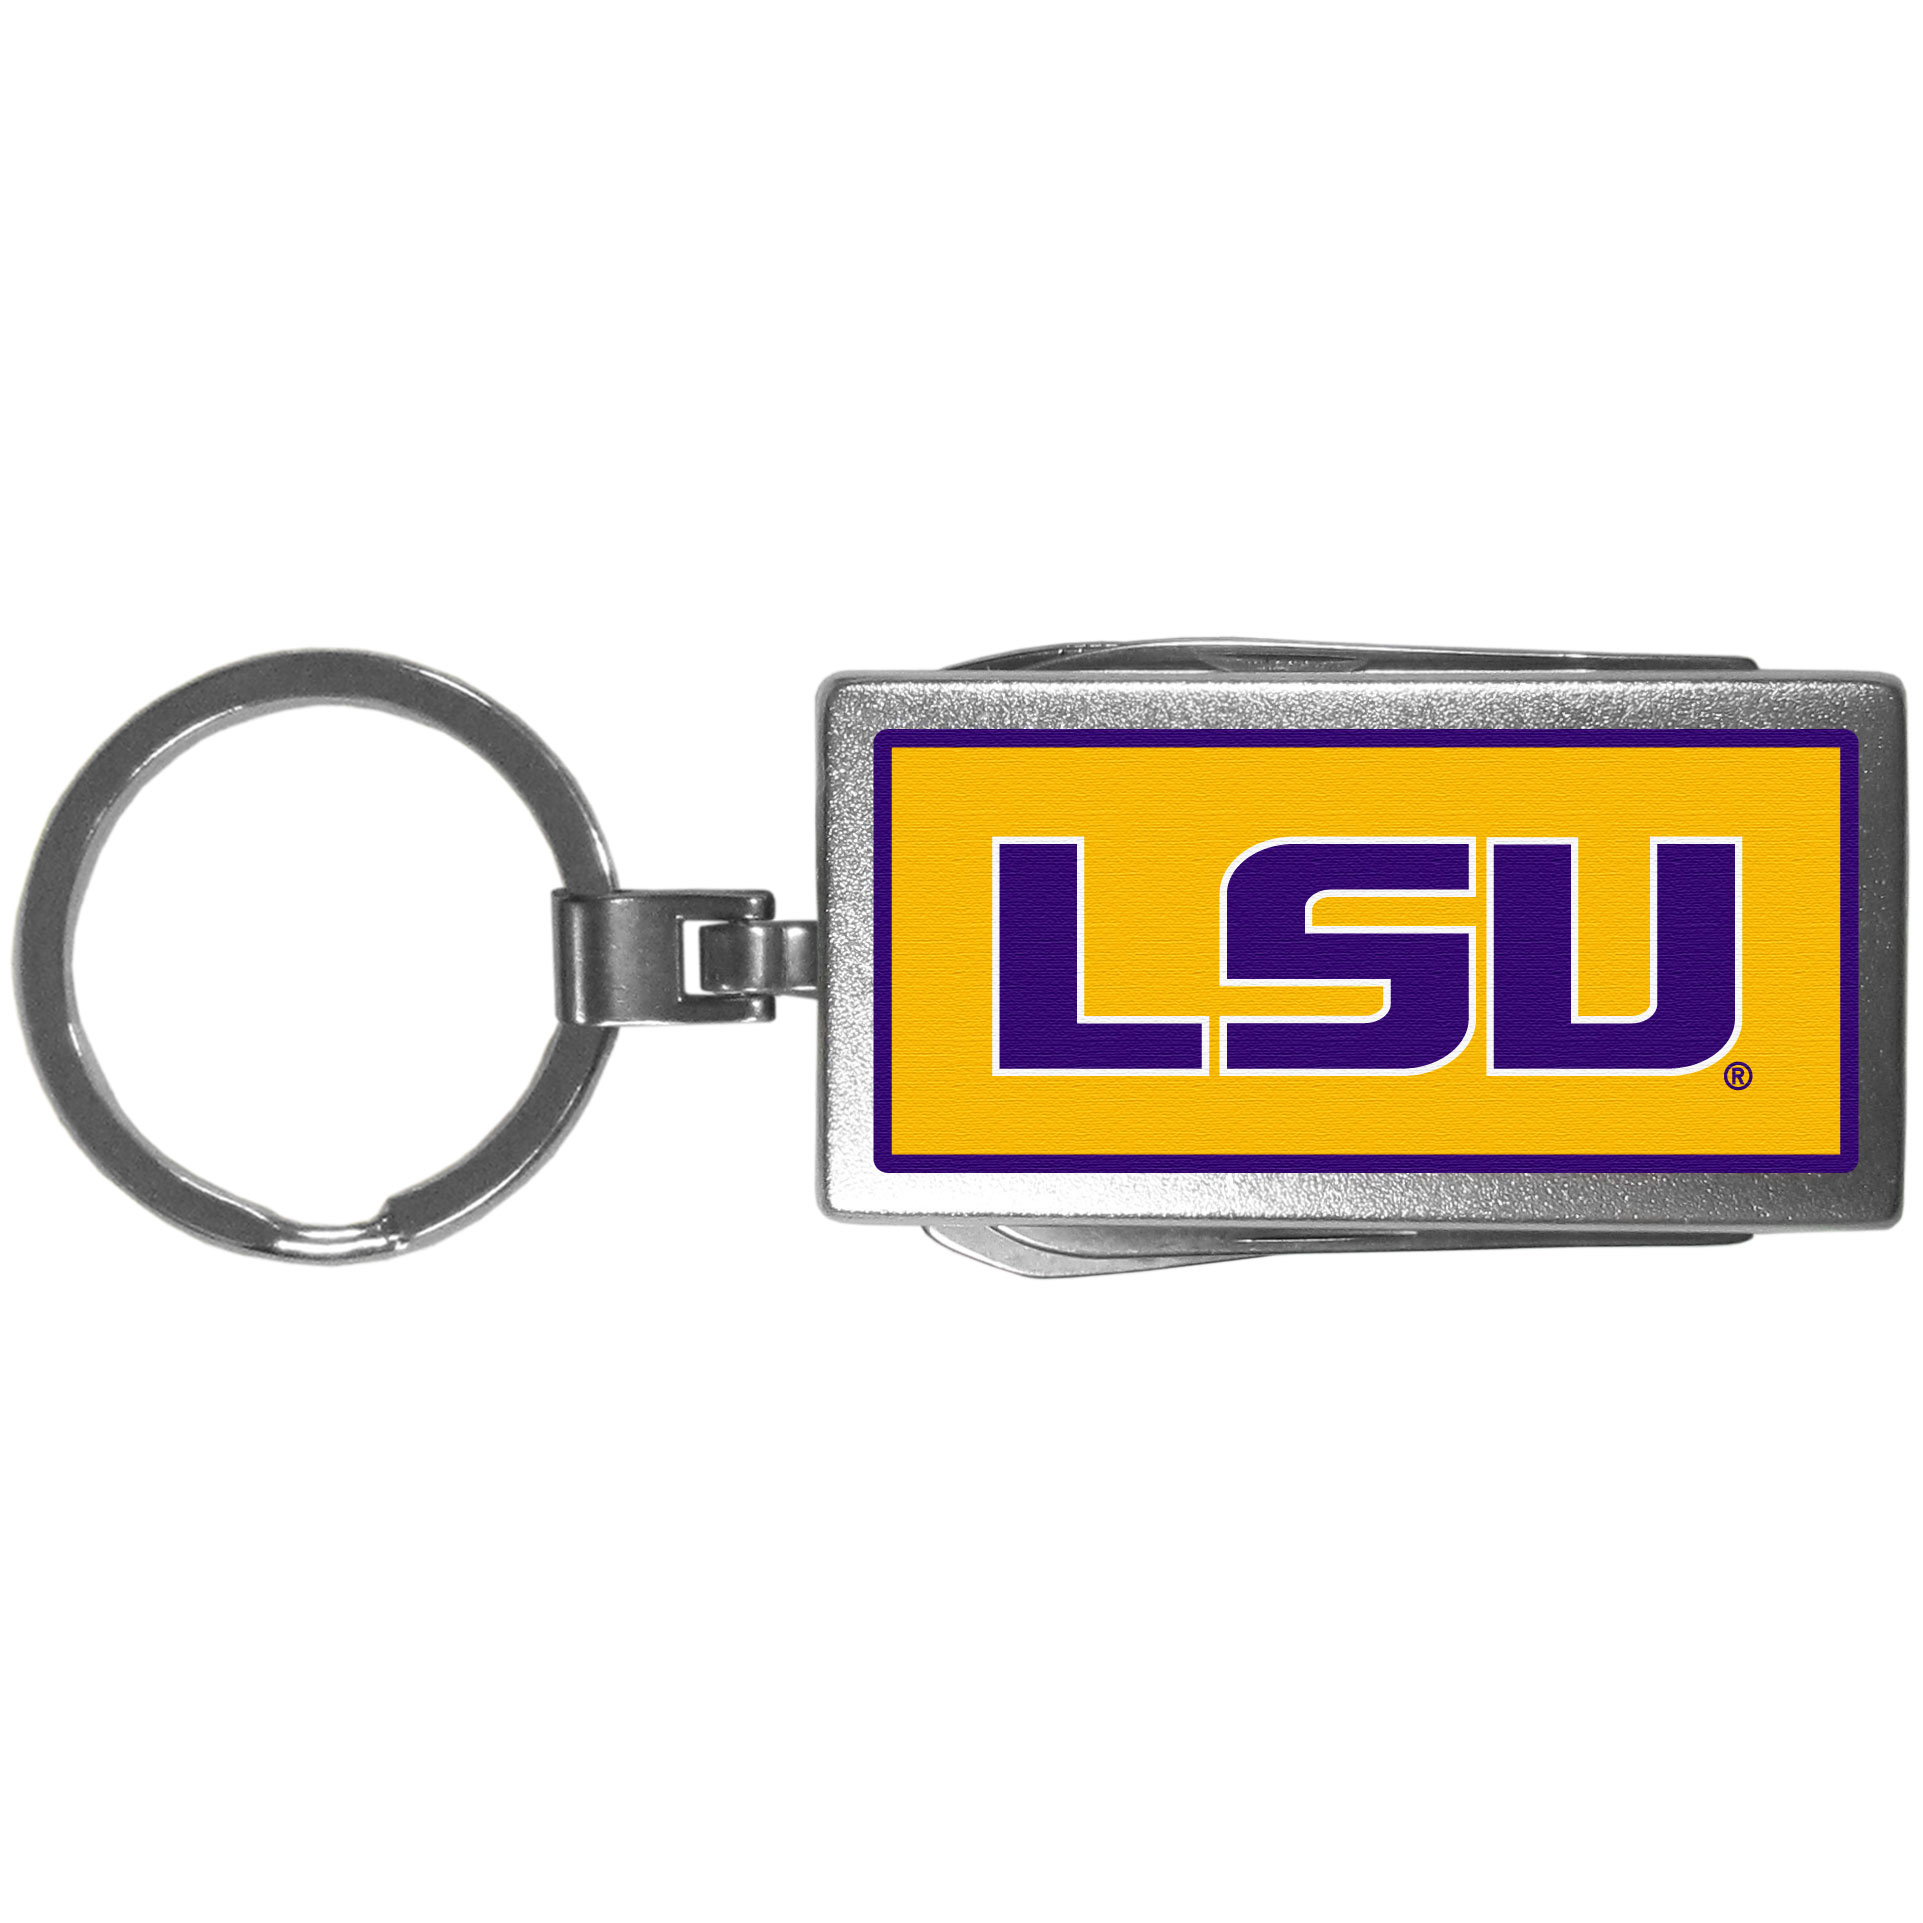 LSU Tigers Multi-tool Key Chain, Logo - Be the hero at the tailgate, camping, or on a Friday night with your LSU Tigers Multi-Tool Keychain which comes complete with bottle opener, scissors, knife, nail file and screw driver. Be it opening a package or a beverage Siskiyou's Multi-Tool Keychain goes wherever your keys do. The keychain hangs at 4 inches long when closed.